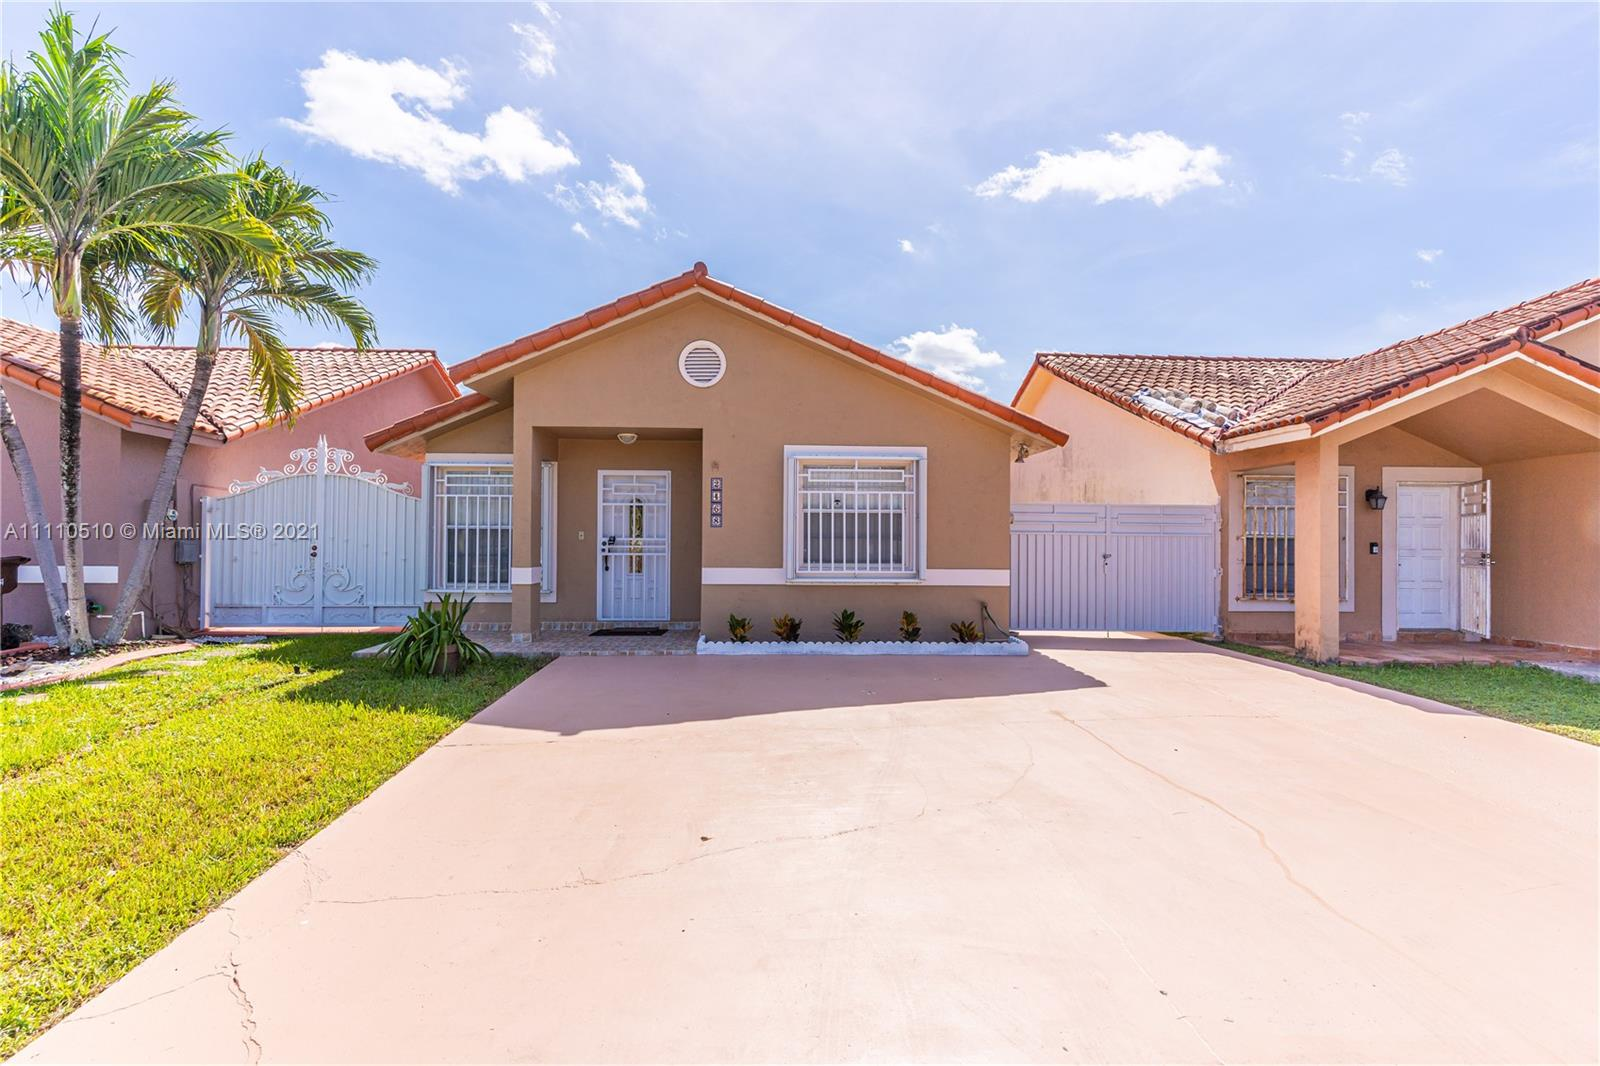 Single Family Home,For Sale,2468 W 74th St, Hialeah, Florida 33016,Brickell,realty,broker,condos near me